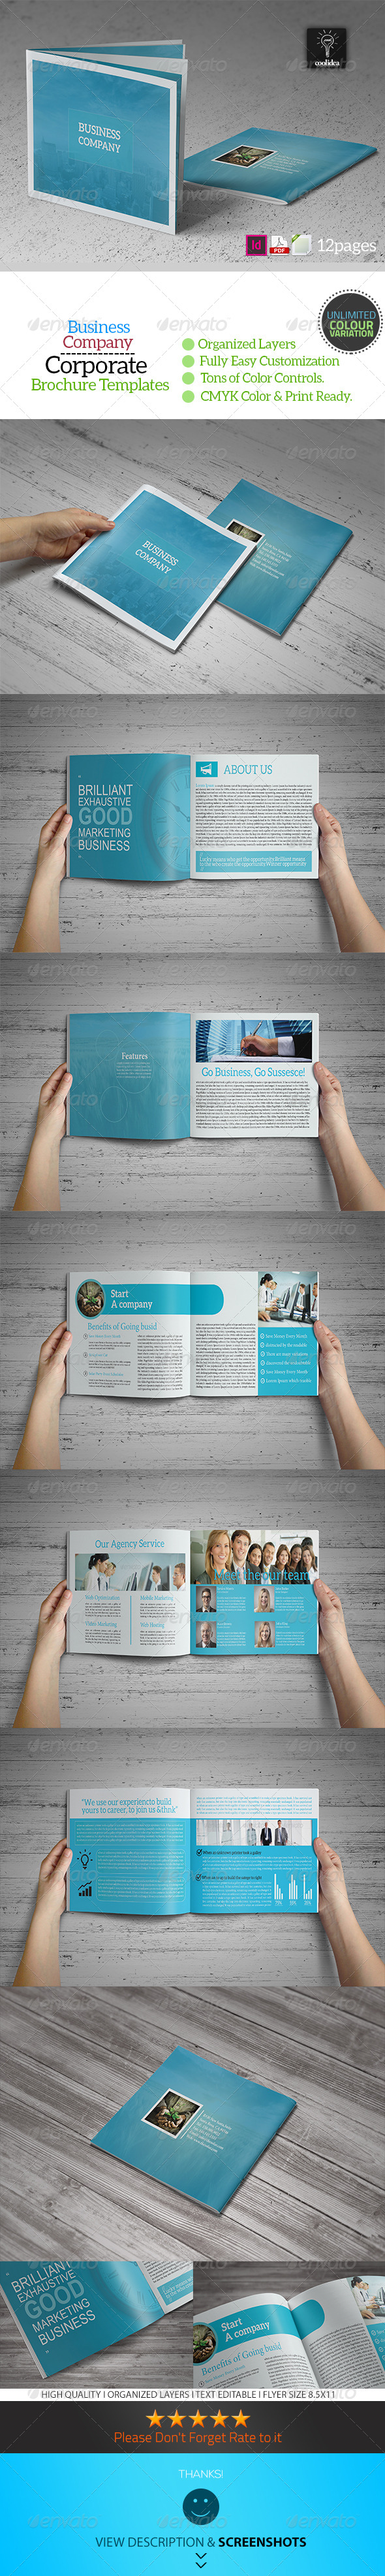 Business Plan - 12 Pages Business Brochure - Corporate Brochures